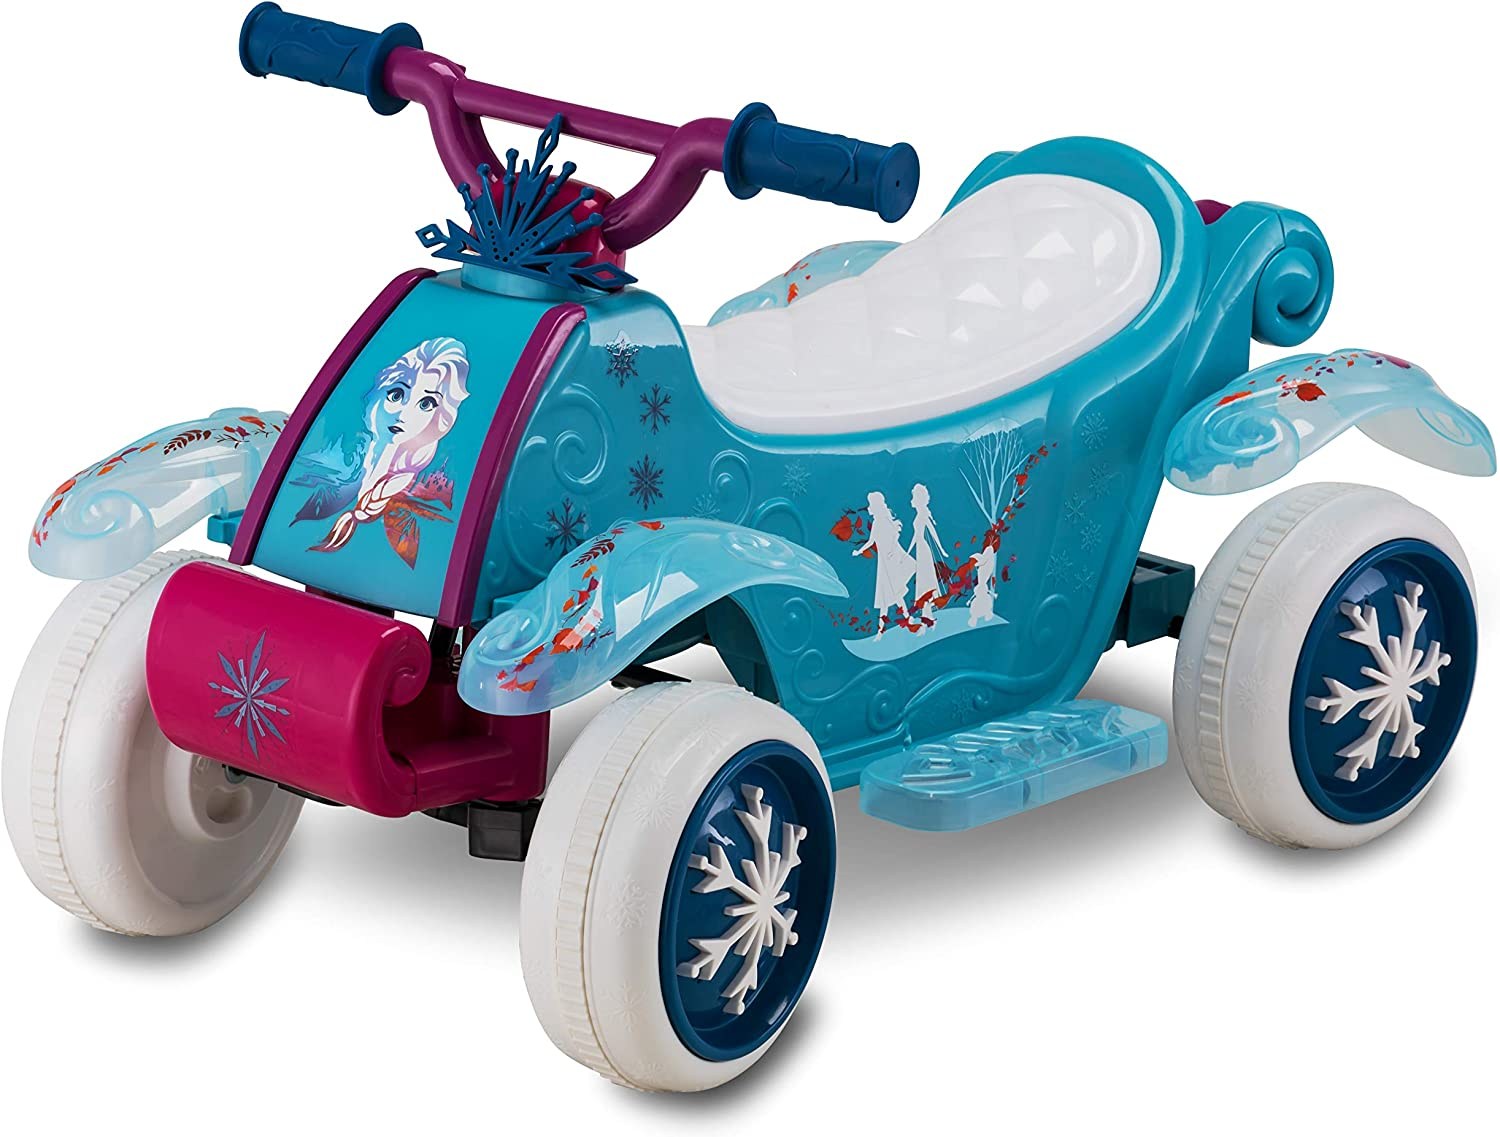 Frozen Toddler Ride On Toys by Kid Trax